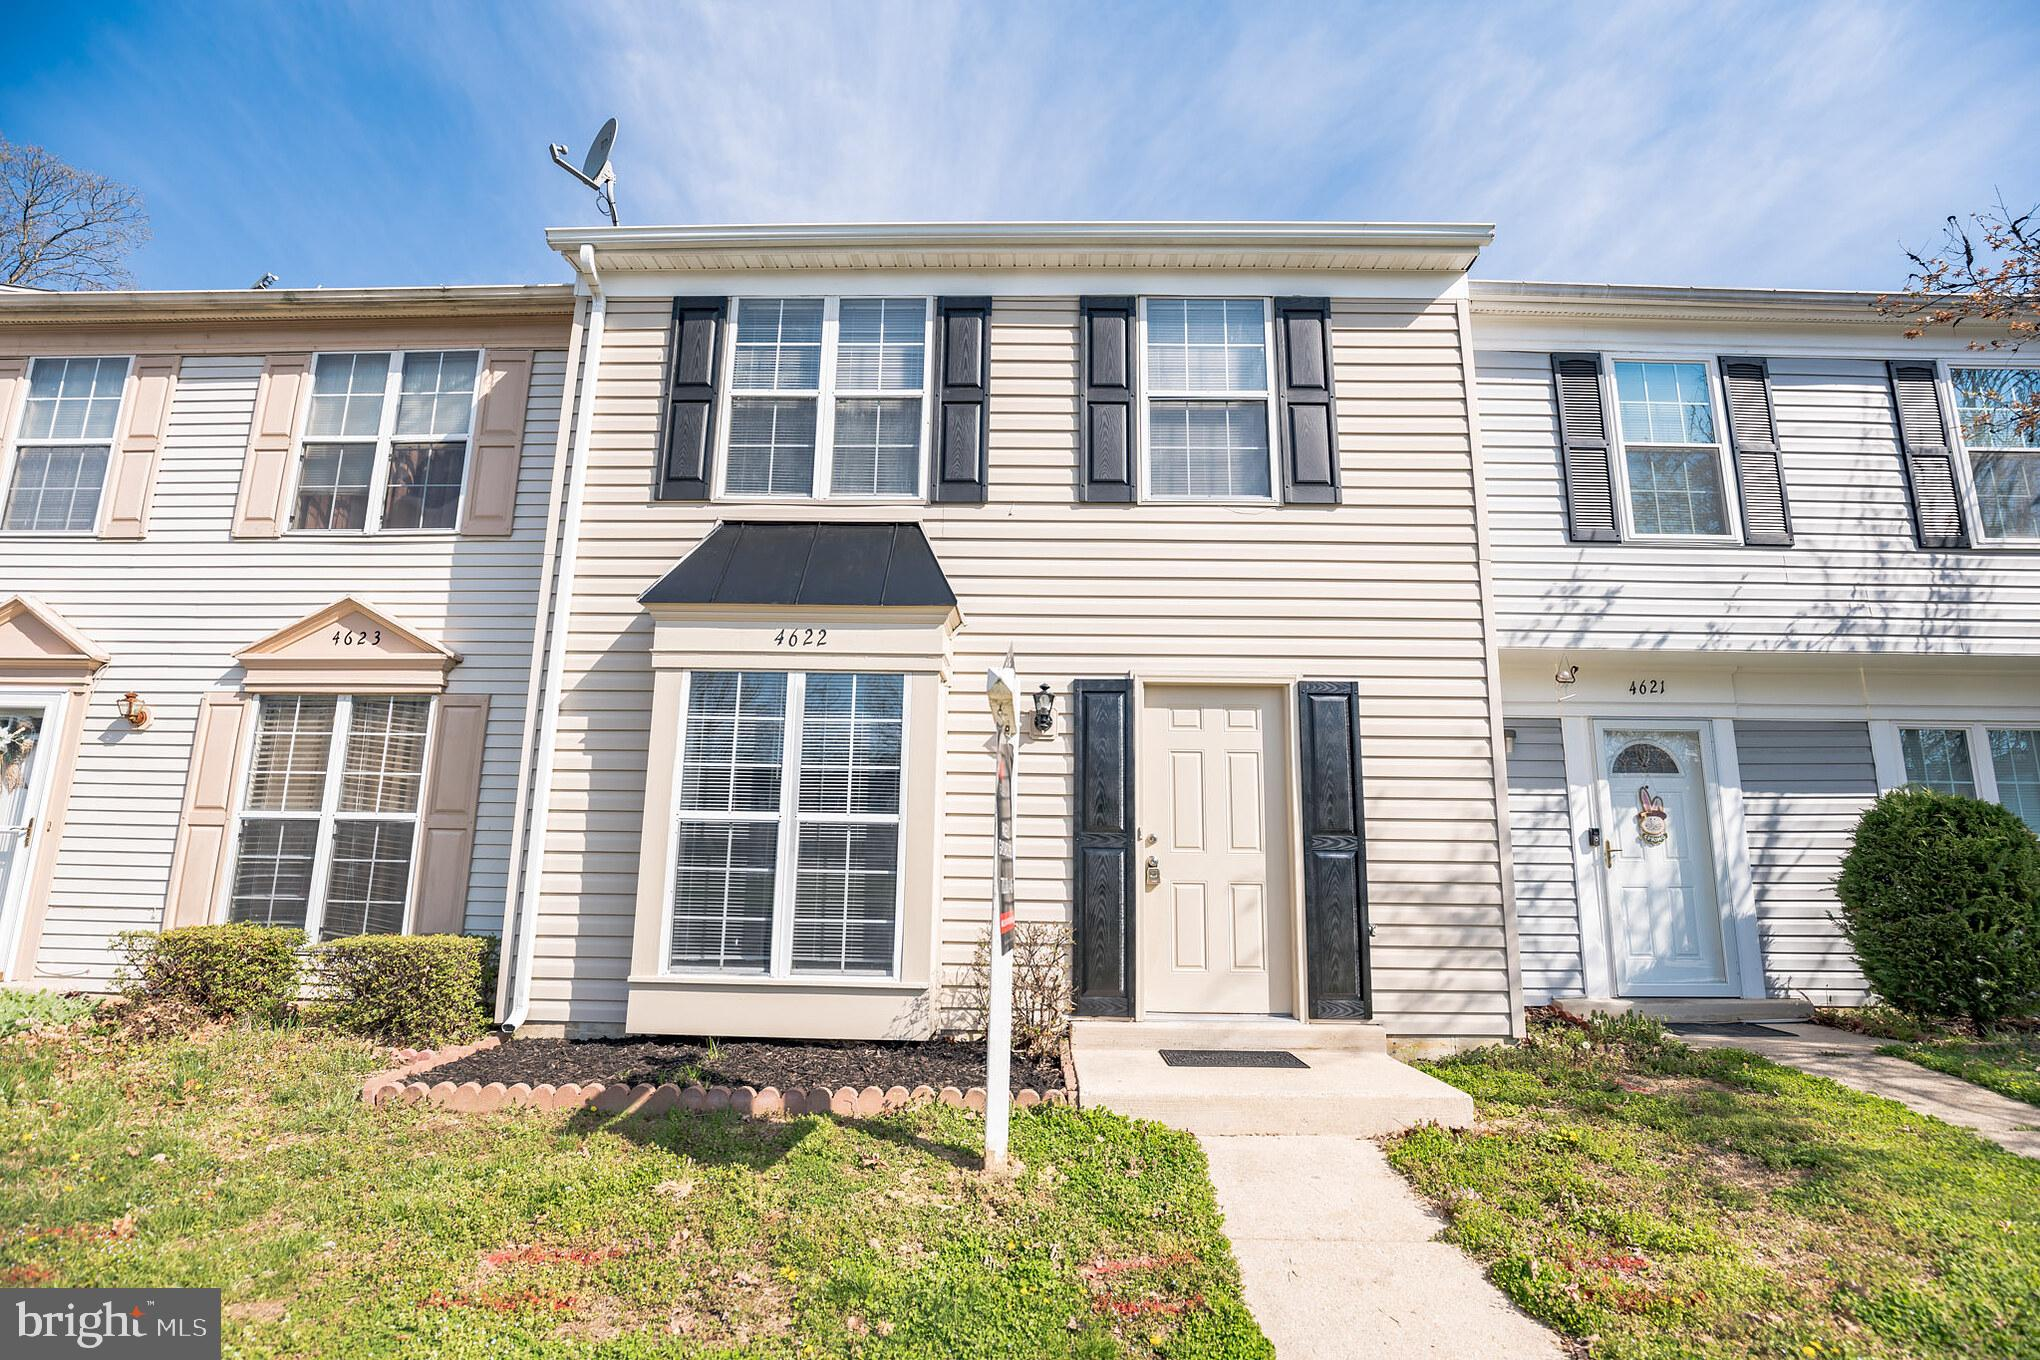 3 bedroom 1.5 bath townhome. The main floor is bright and airy with access to the partially fenced b